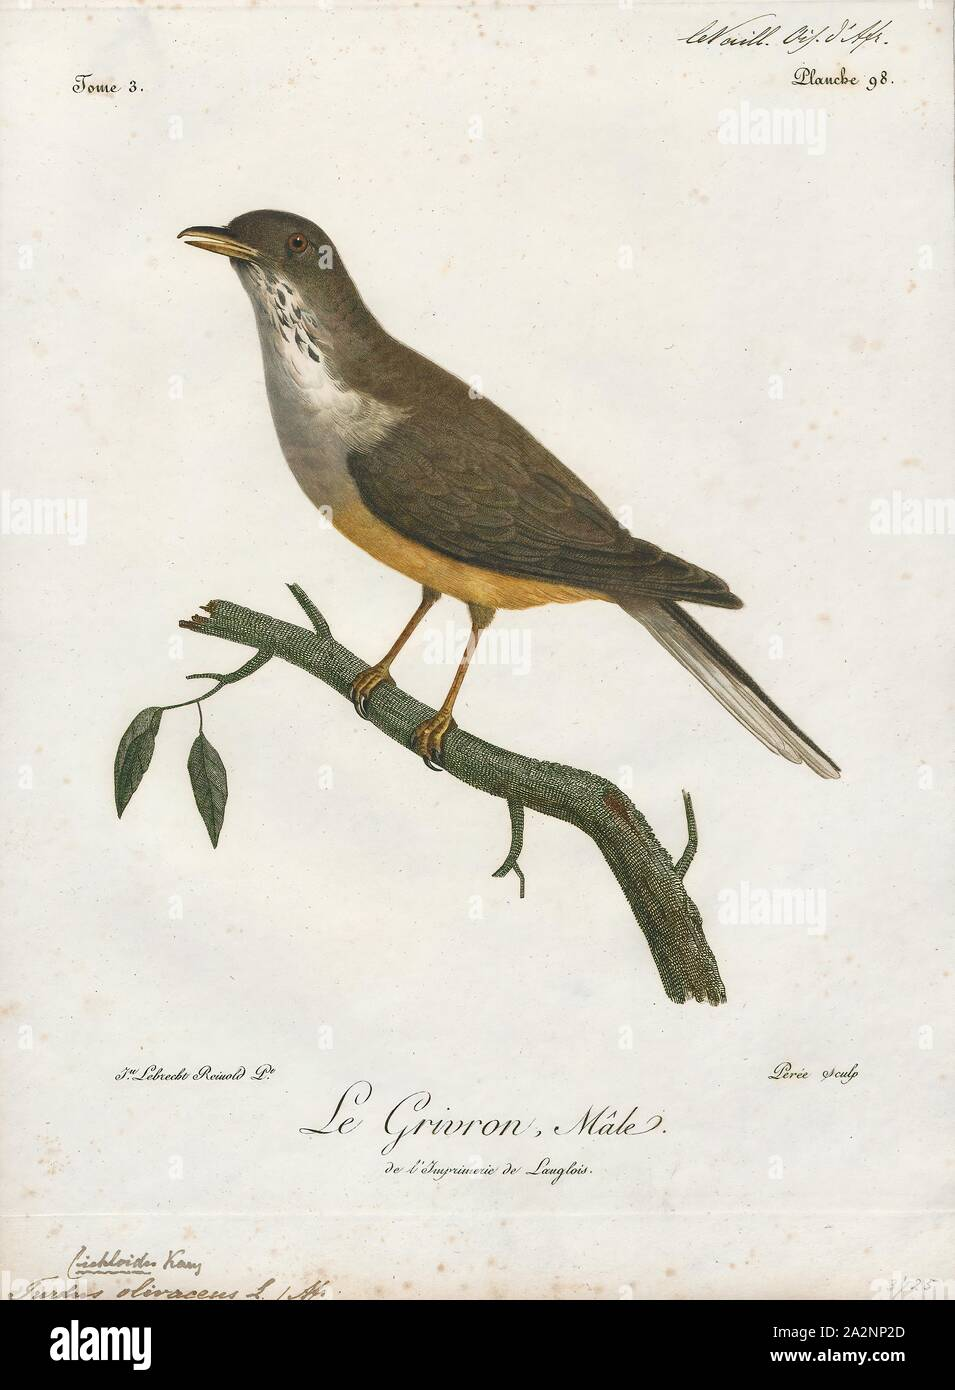 Turdus olivaceus, Print, The olive thrush (Turdus olivaceus) is, in its range, one of the most common members of the thrush family (Turdidae). It occurs in east African highlands from Tanzania and Zimbabwe in the north to the Cape of Good Hope in south. It is a bird of forest and woodland, but has locally adapted to parks and large gardens in suburban areas., 1796-1808 Stock Photo